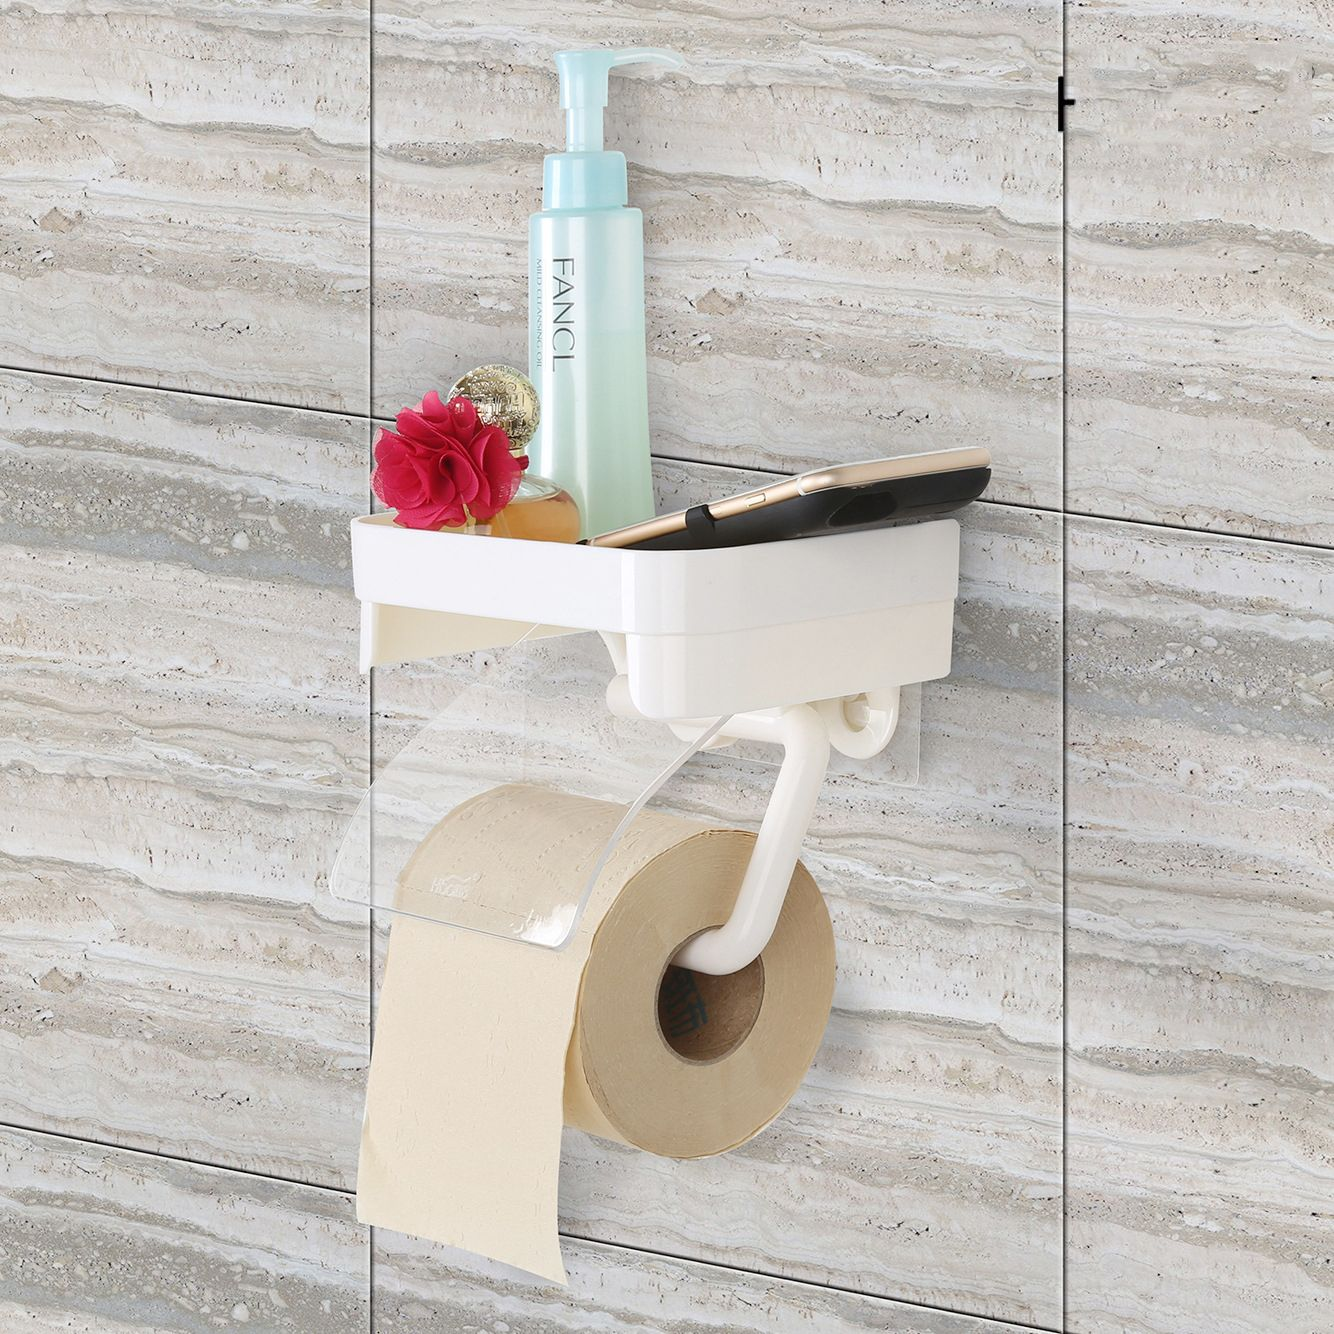 Us 9 99 Honana Sucker Wall Mounted Toilet Paper Holder Bathroom Fixture Plastic Roll Paper Holders Toilet Paper Holder Wall Mounted Toilet Bathroom Fixtures